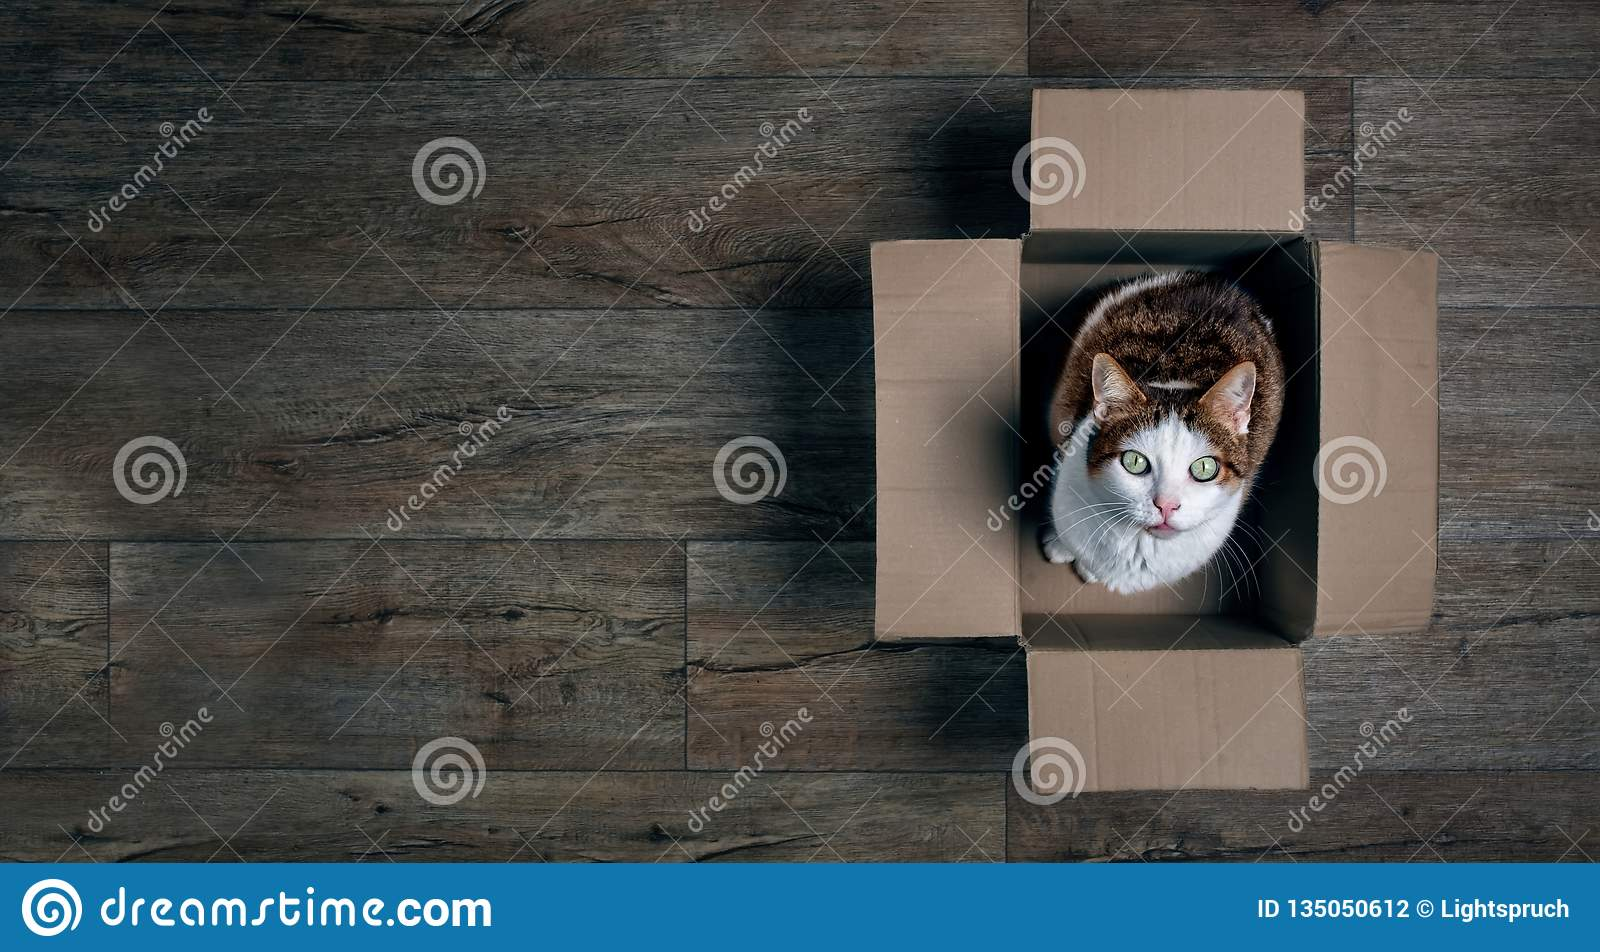 Cute tabby cat in a cardboard box looking up to the camera.